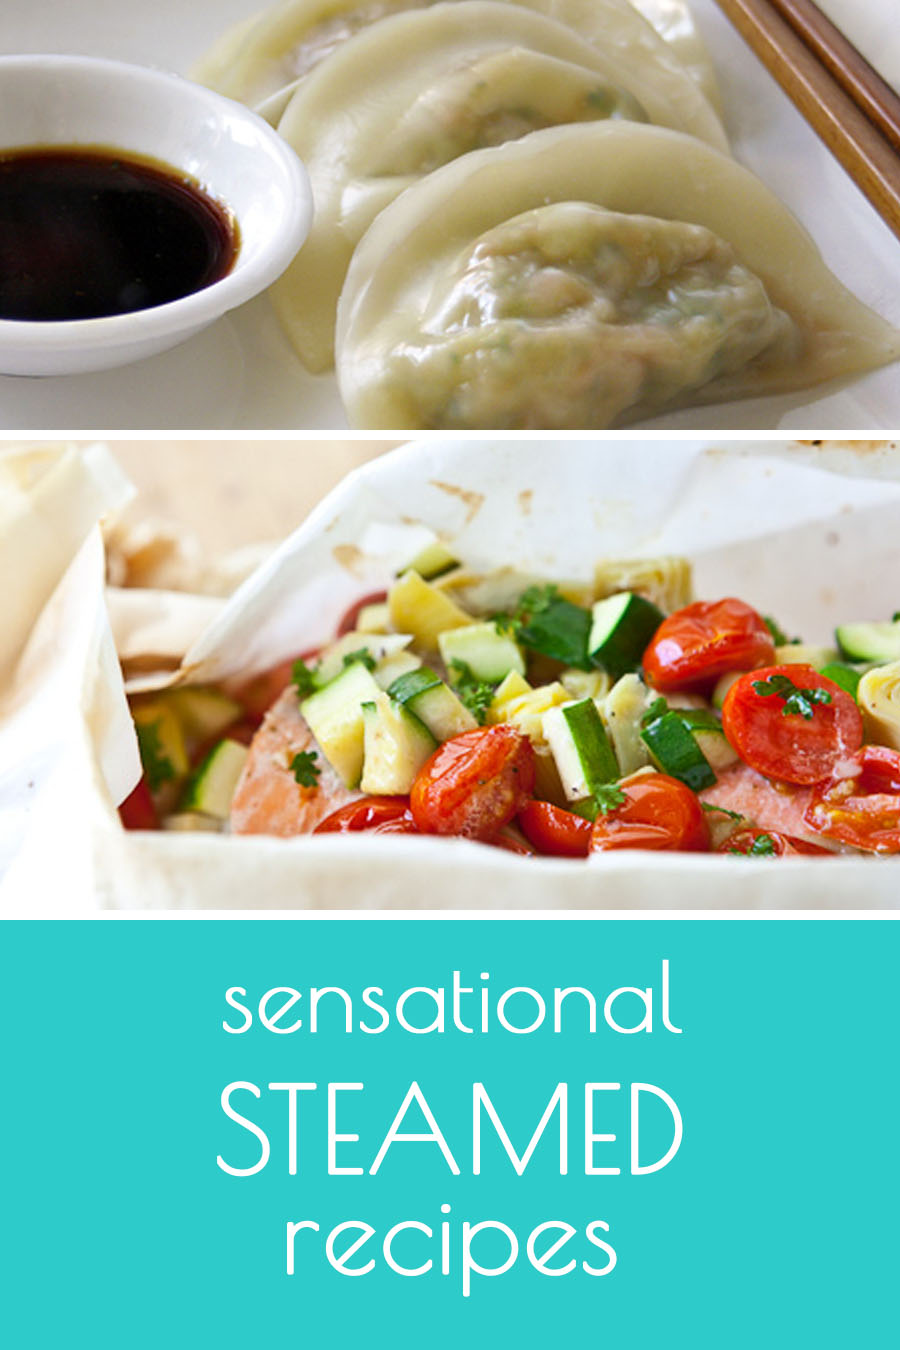 16 sensational steamed recipes